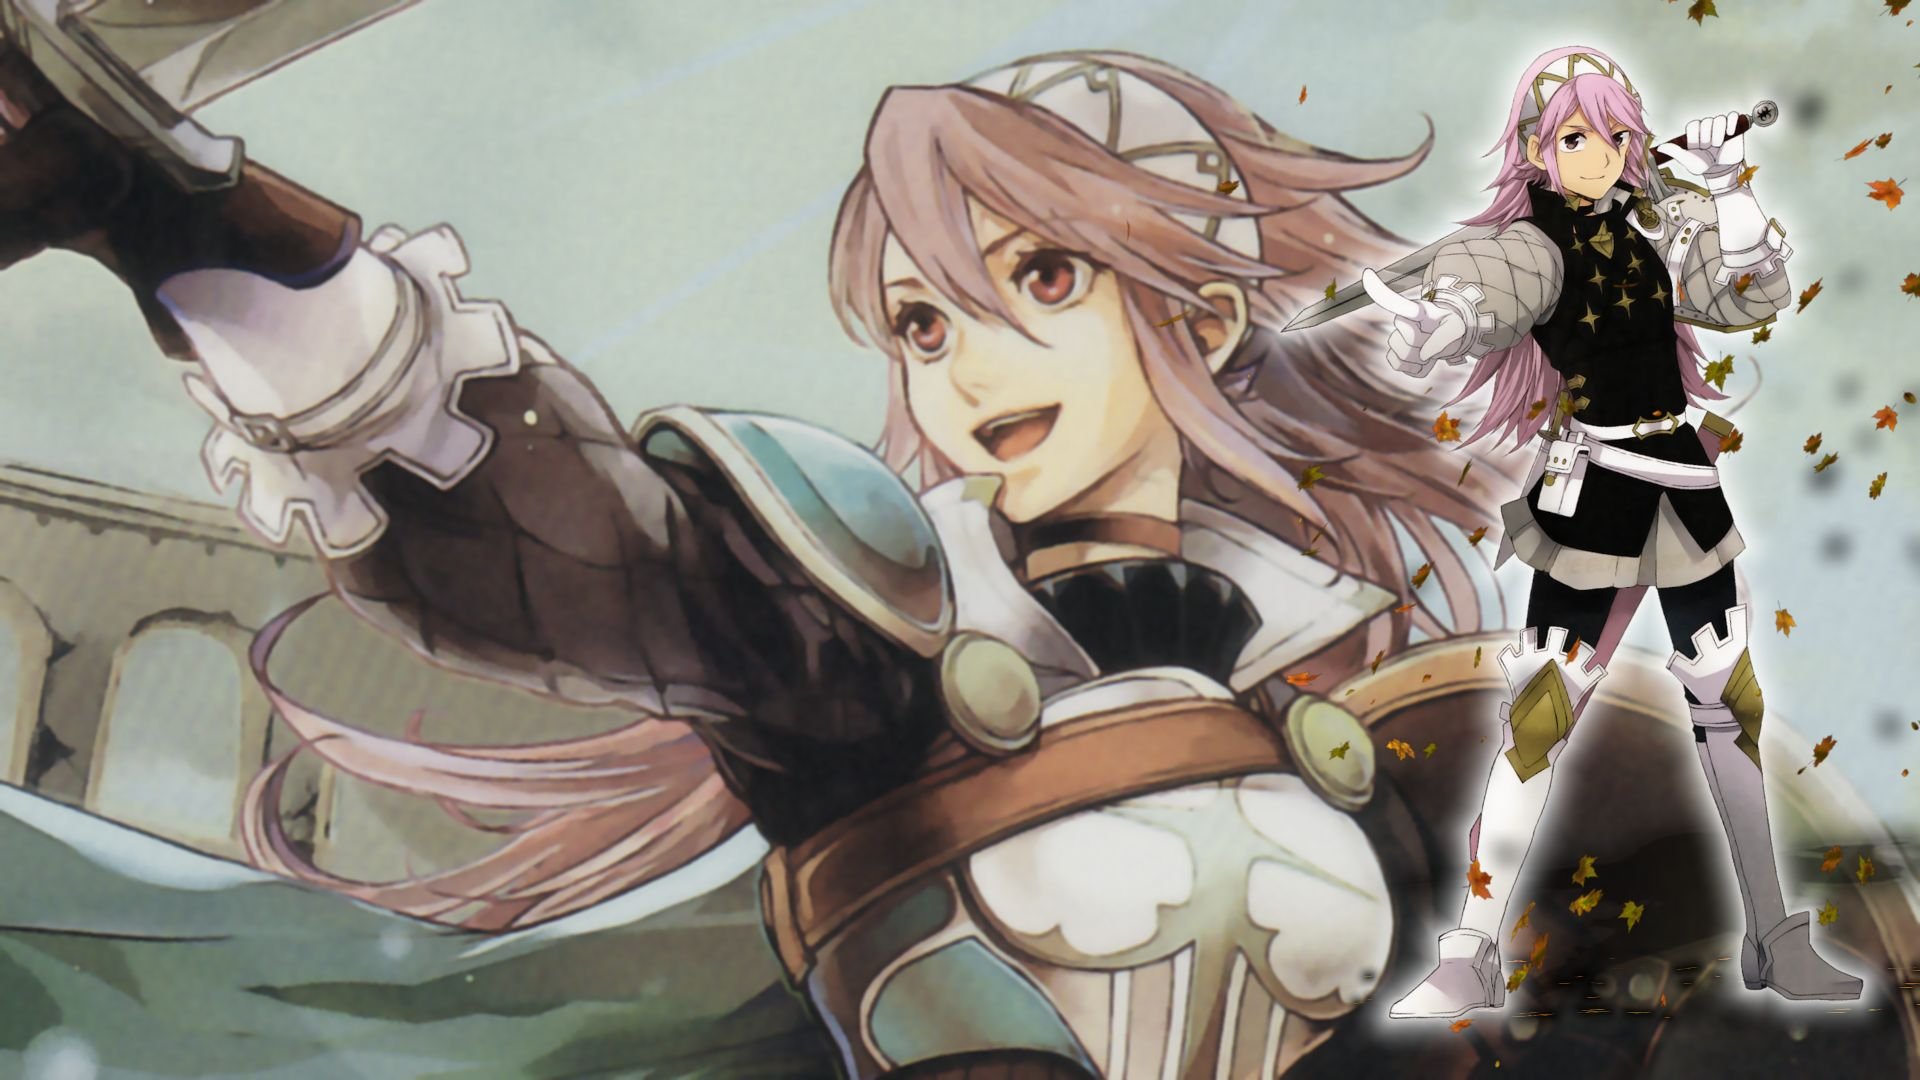 Fire Emblem Fates Wallpaper - Soleil by IncognitoZA on ...